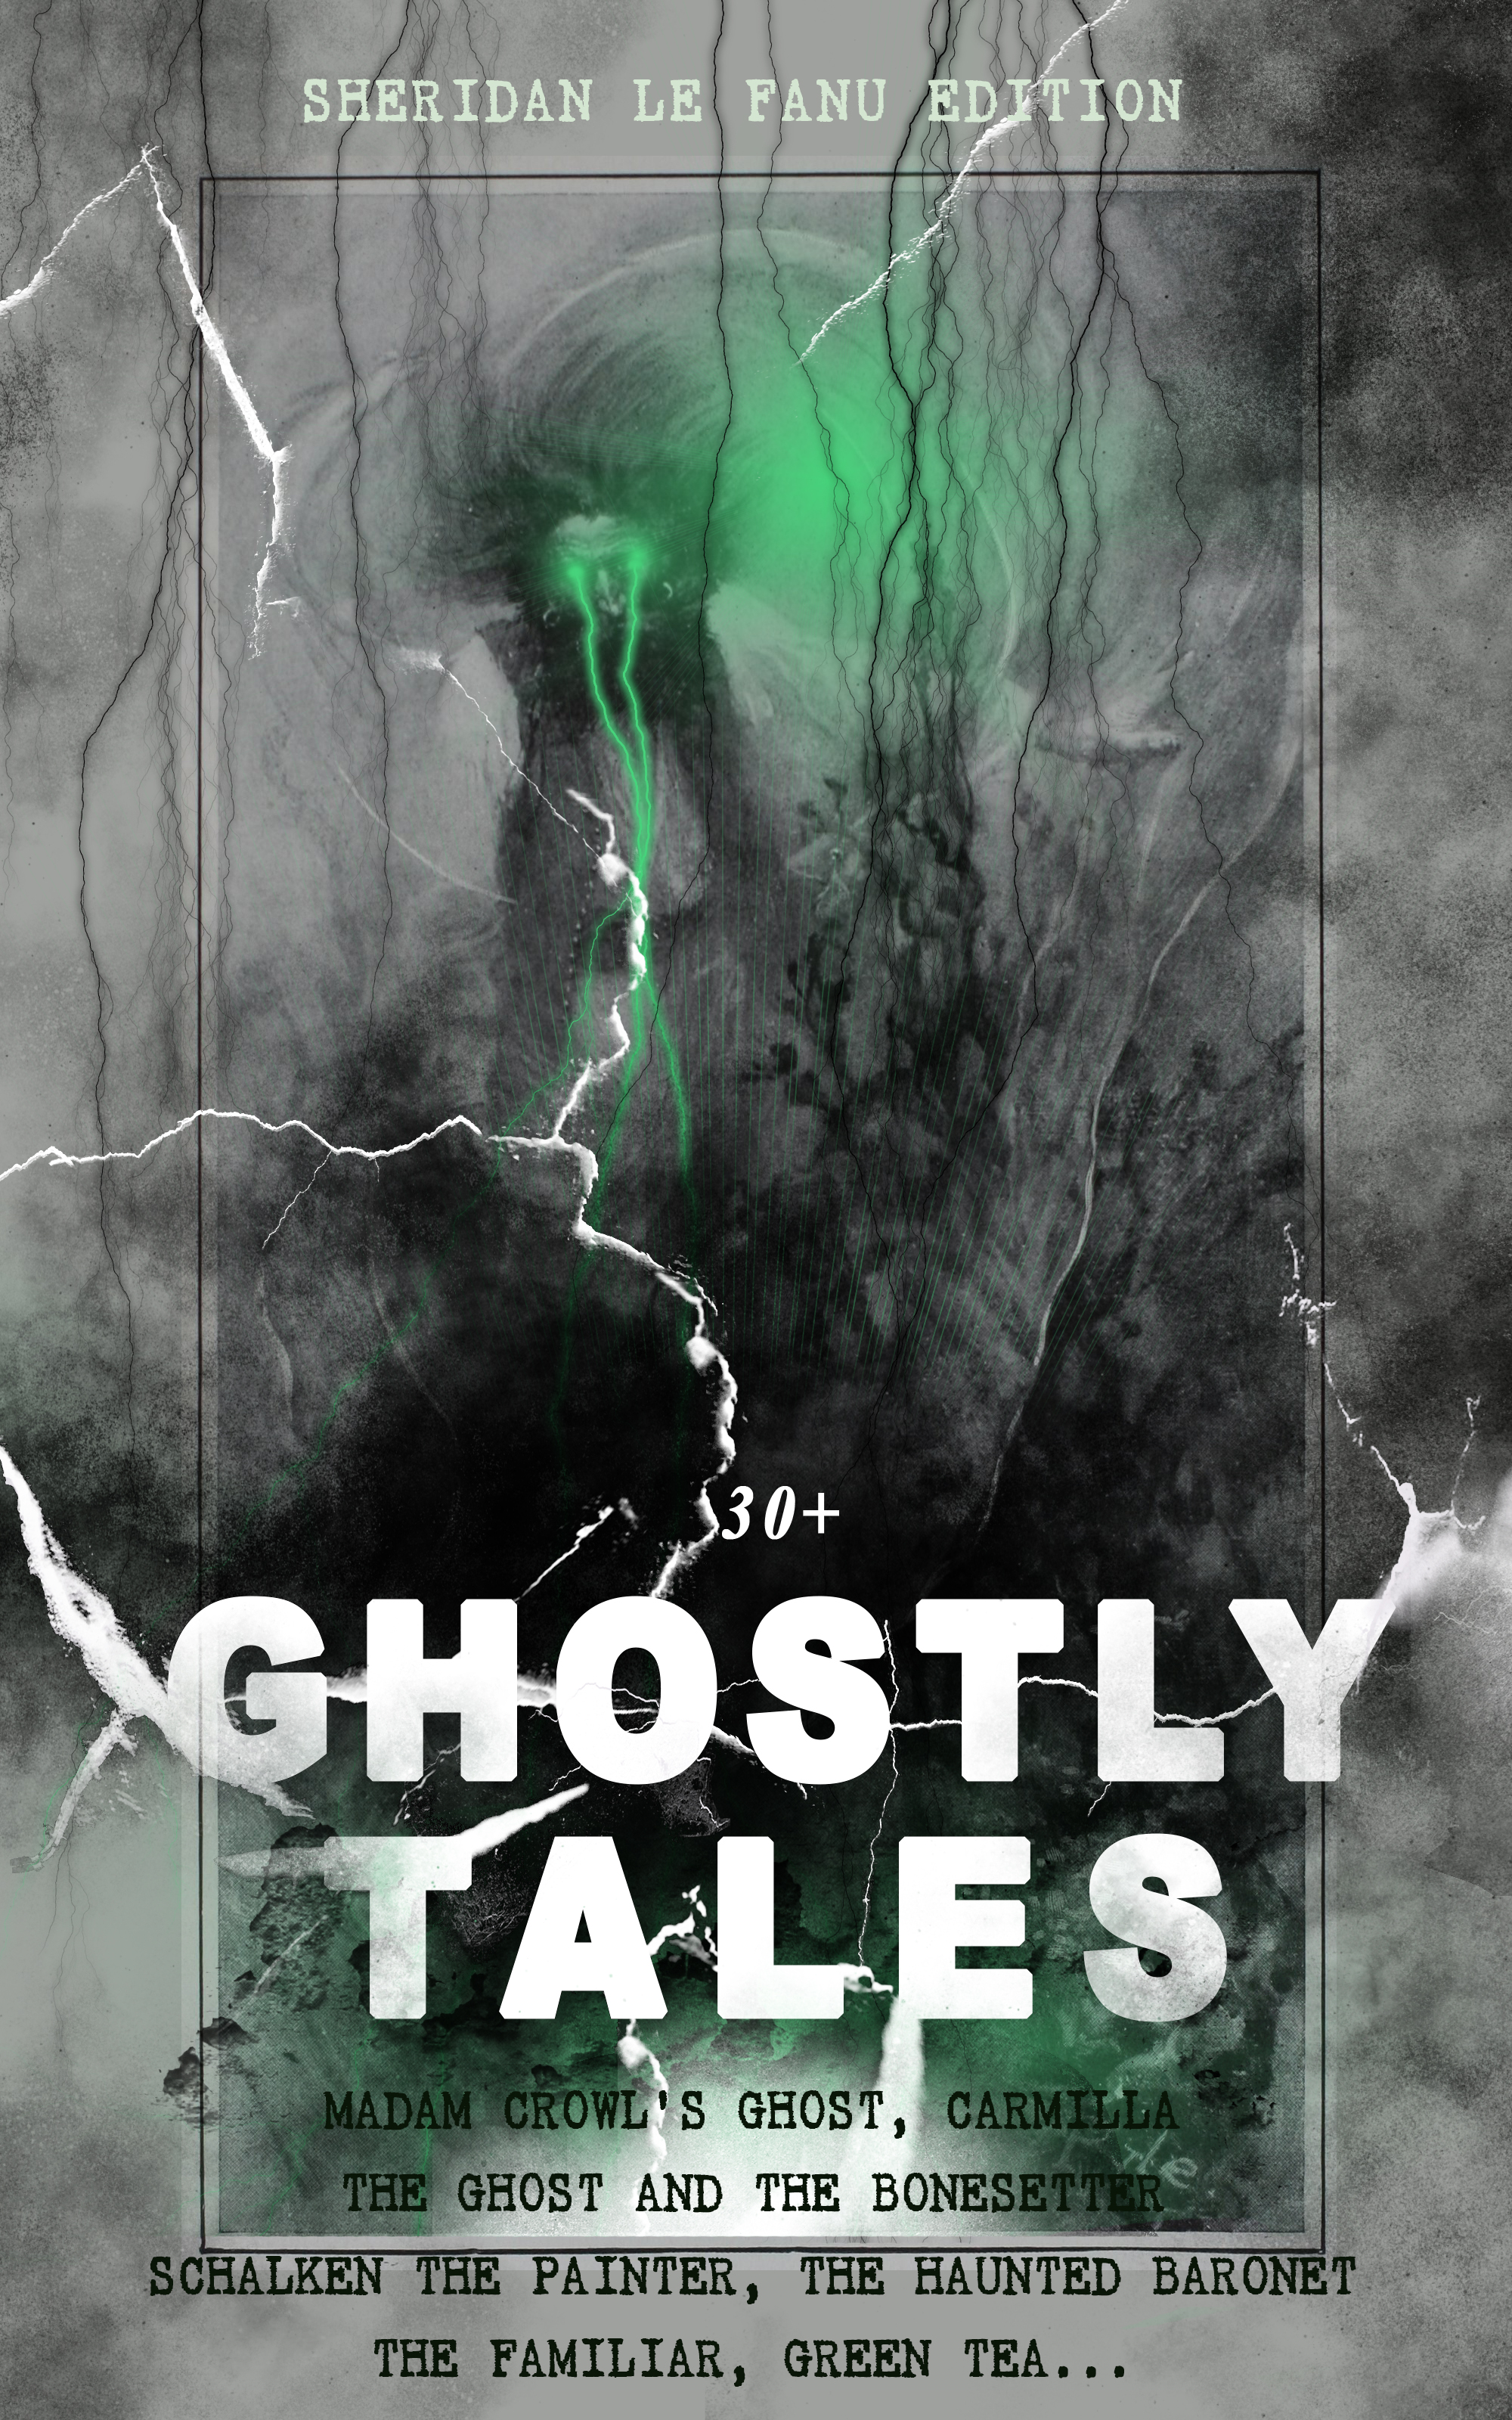 цена на Joseph Sheridan Le Fanu 30+ GHOSTLY TALES - Sheridan Le Fanu Edition: Madam Crowl's Ghost, Carmilla, The Ghost and the Bonesetter, Schalken the Painter, The Haunted Baronet, The Familiar, Green Tea…